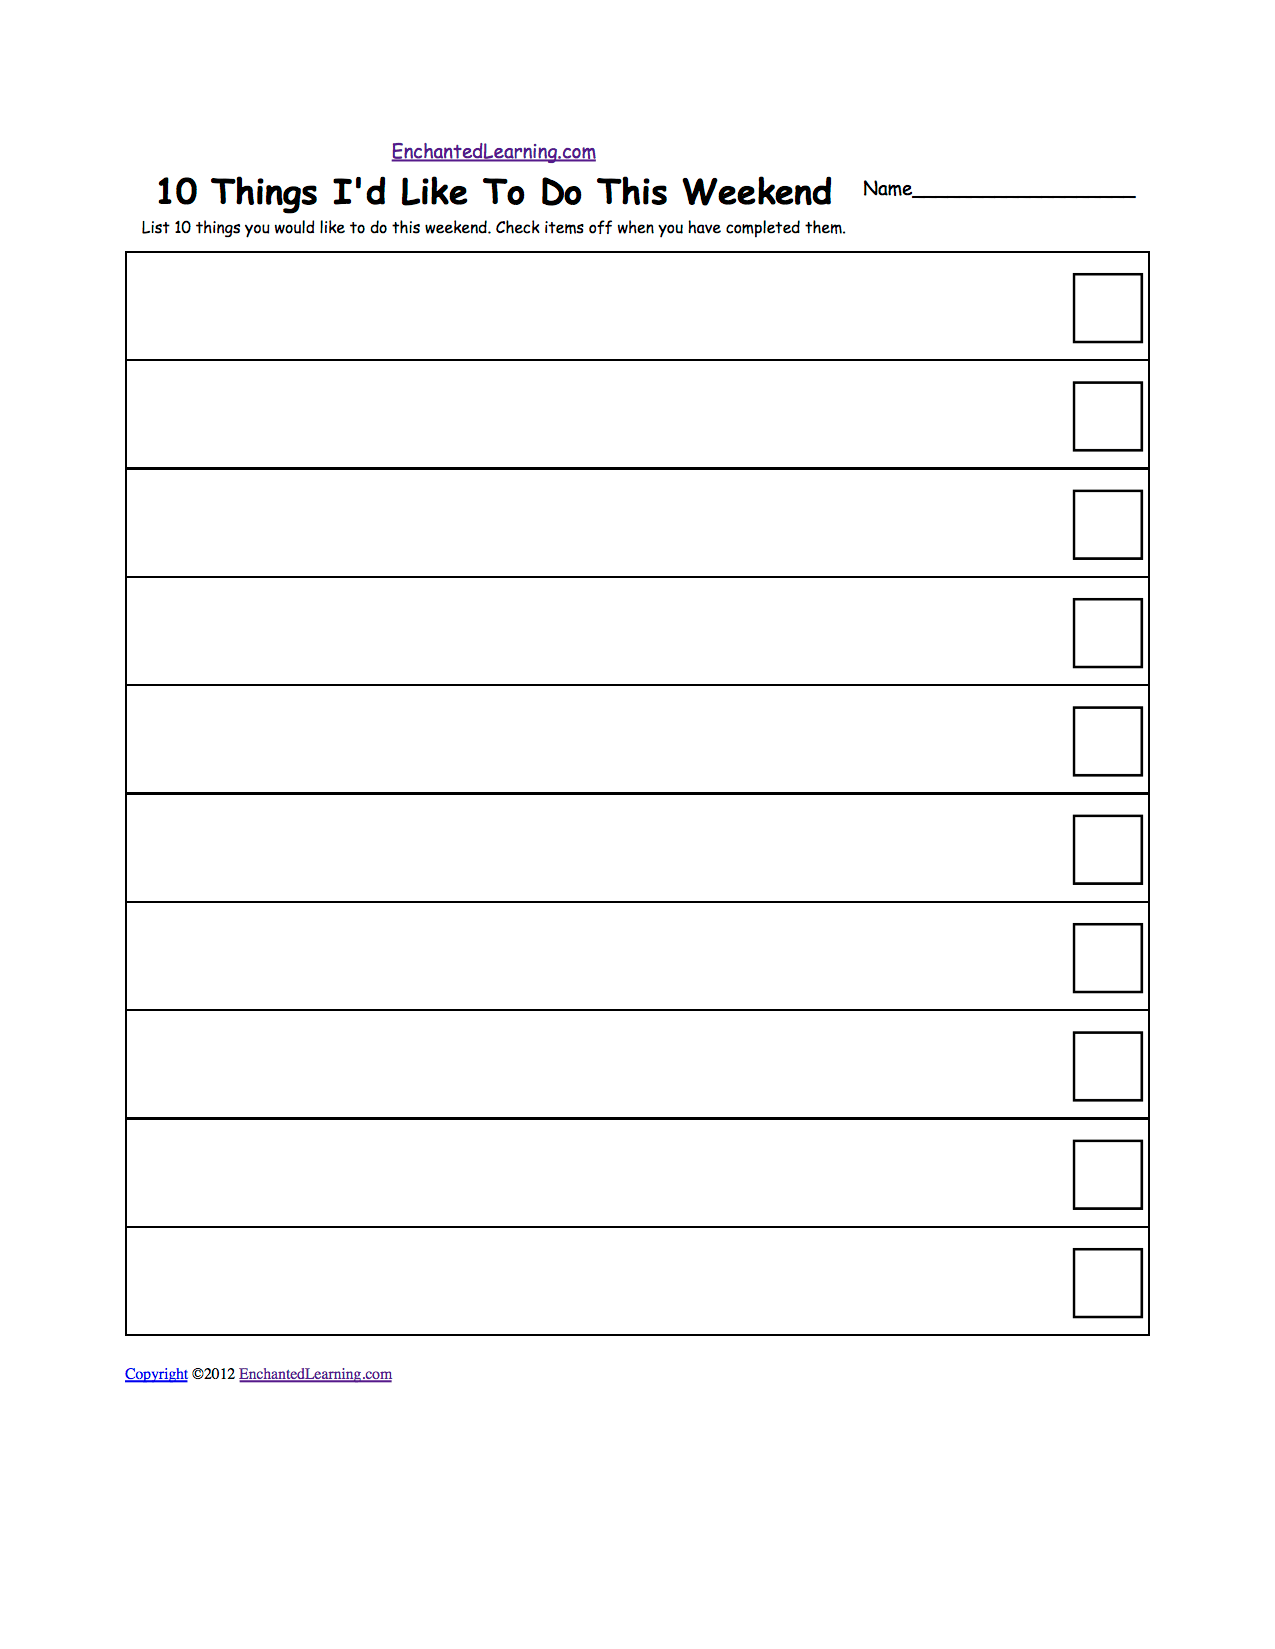 12 Best Images Of Printable Worksheet To Do List